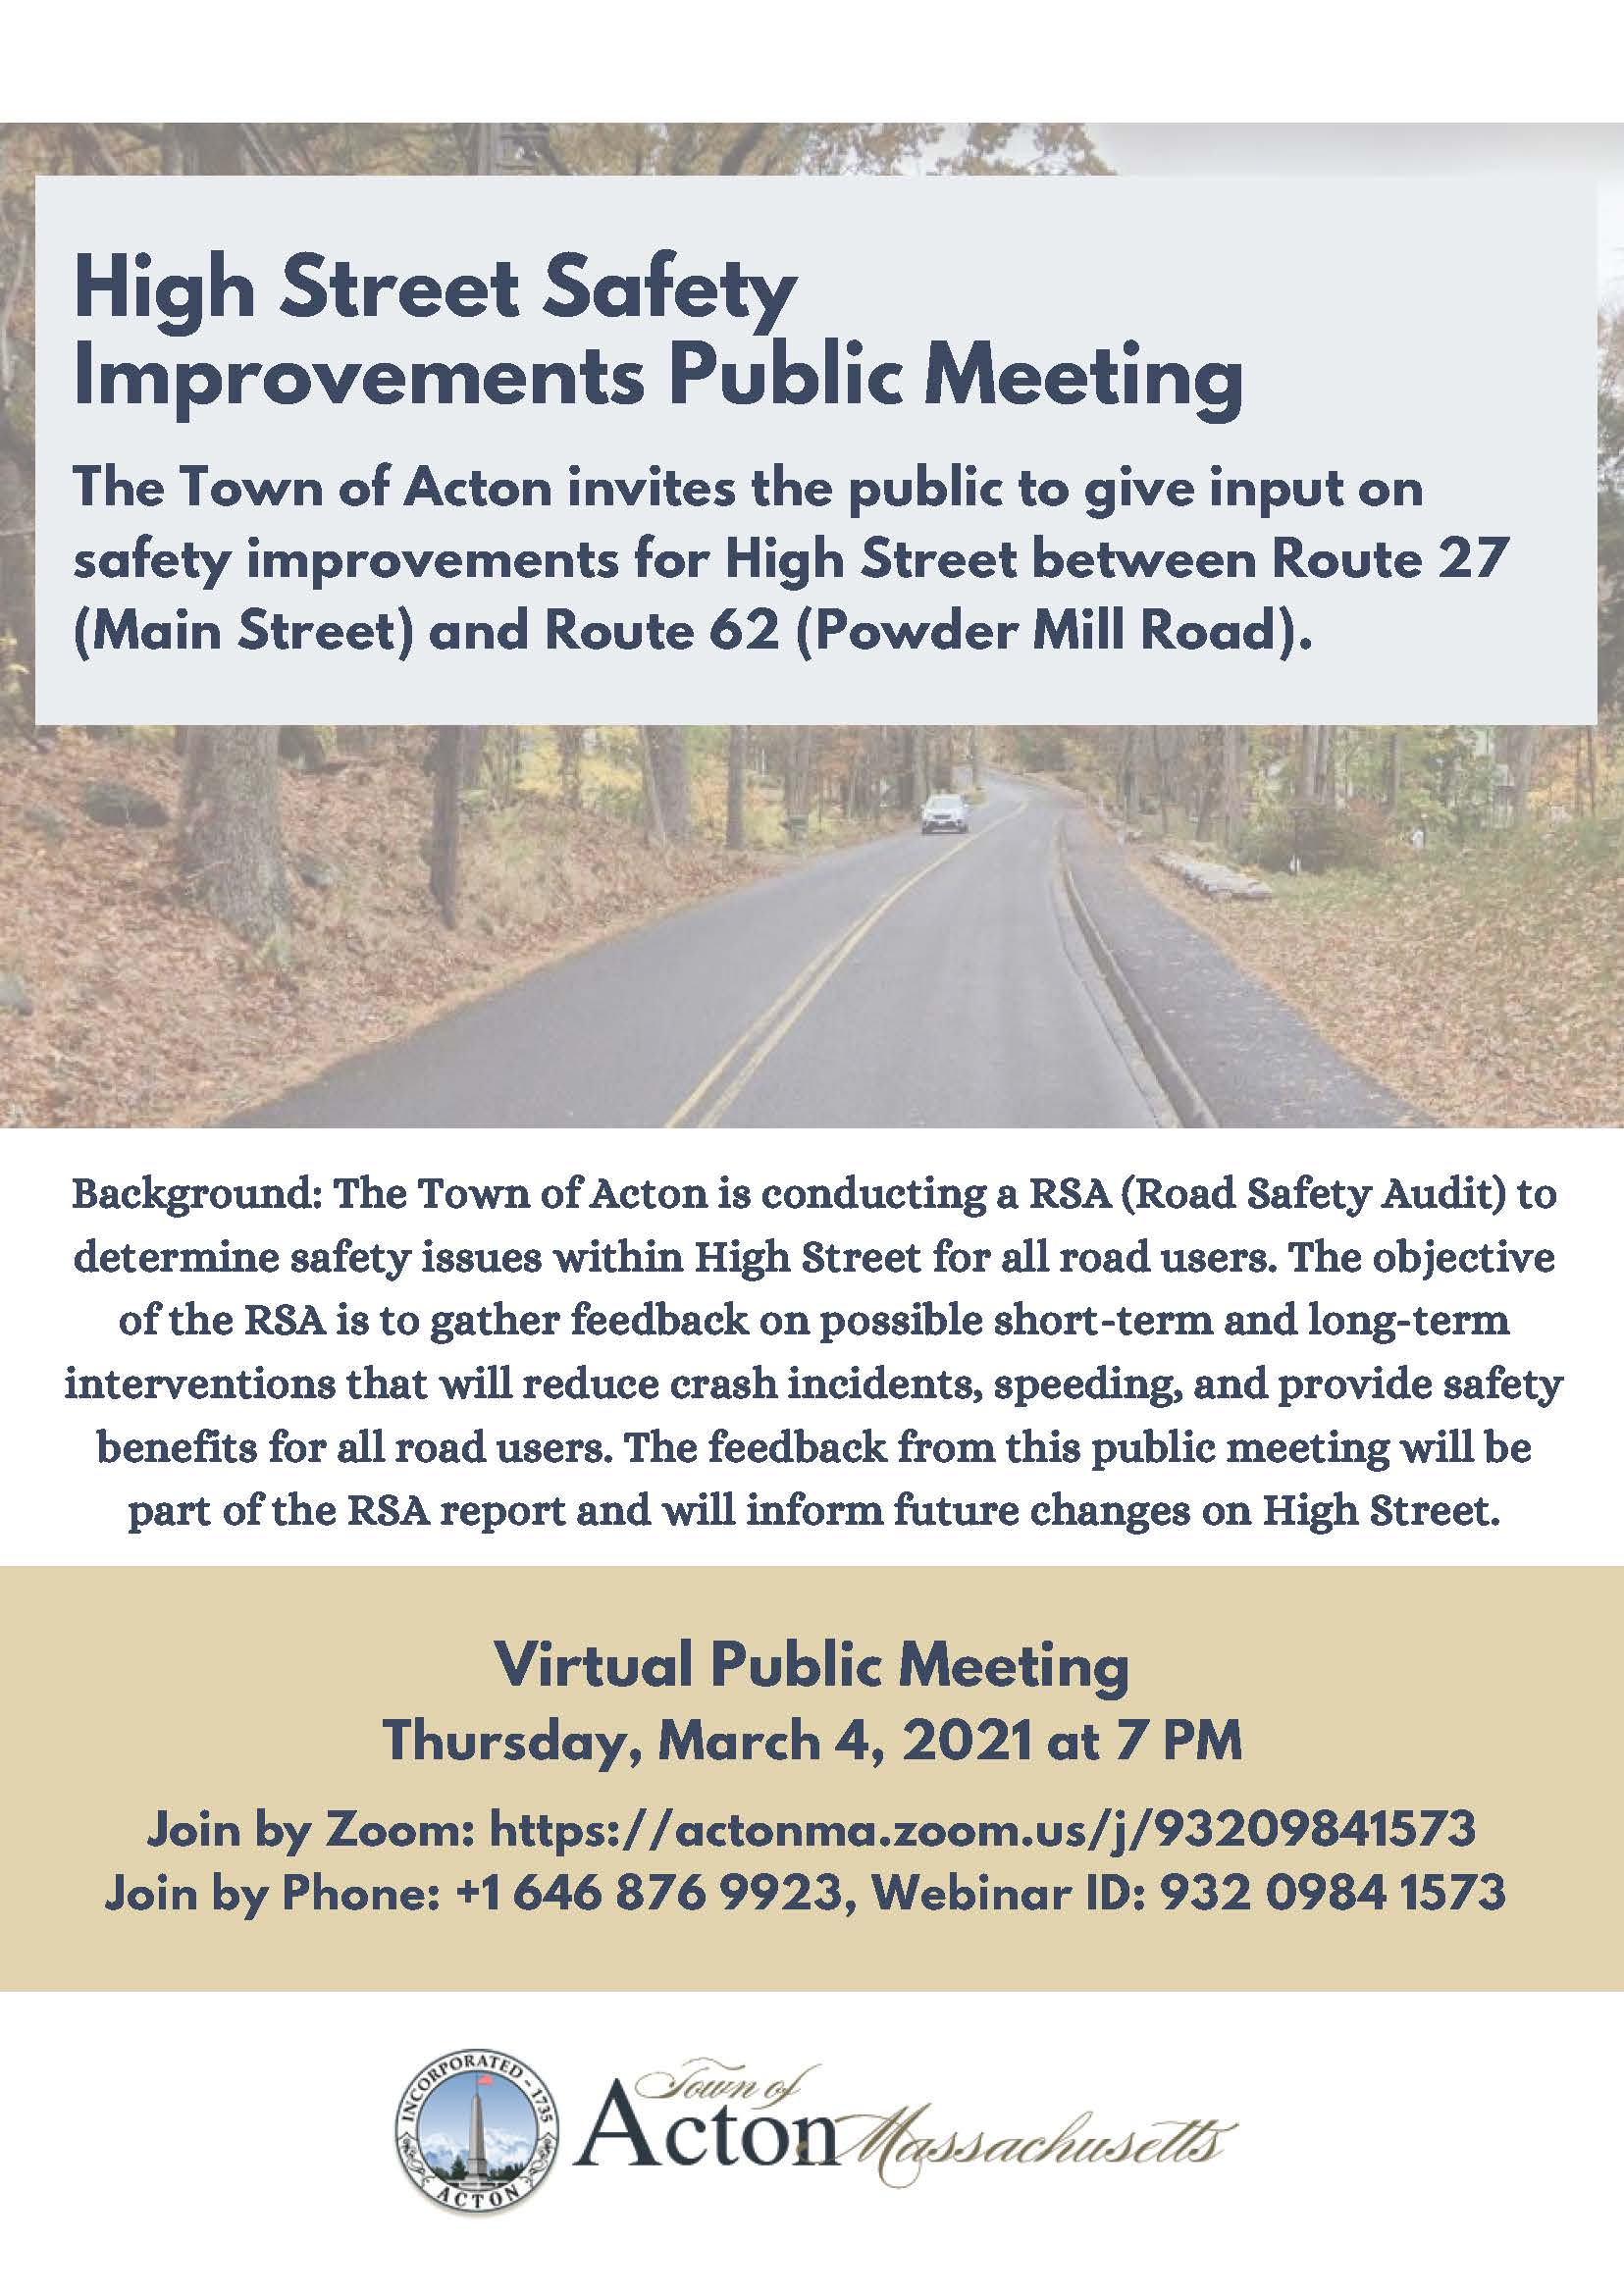 High St Public Meeting flyer posted